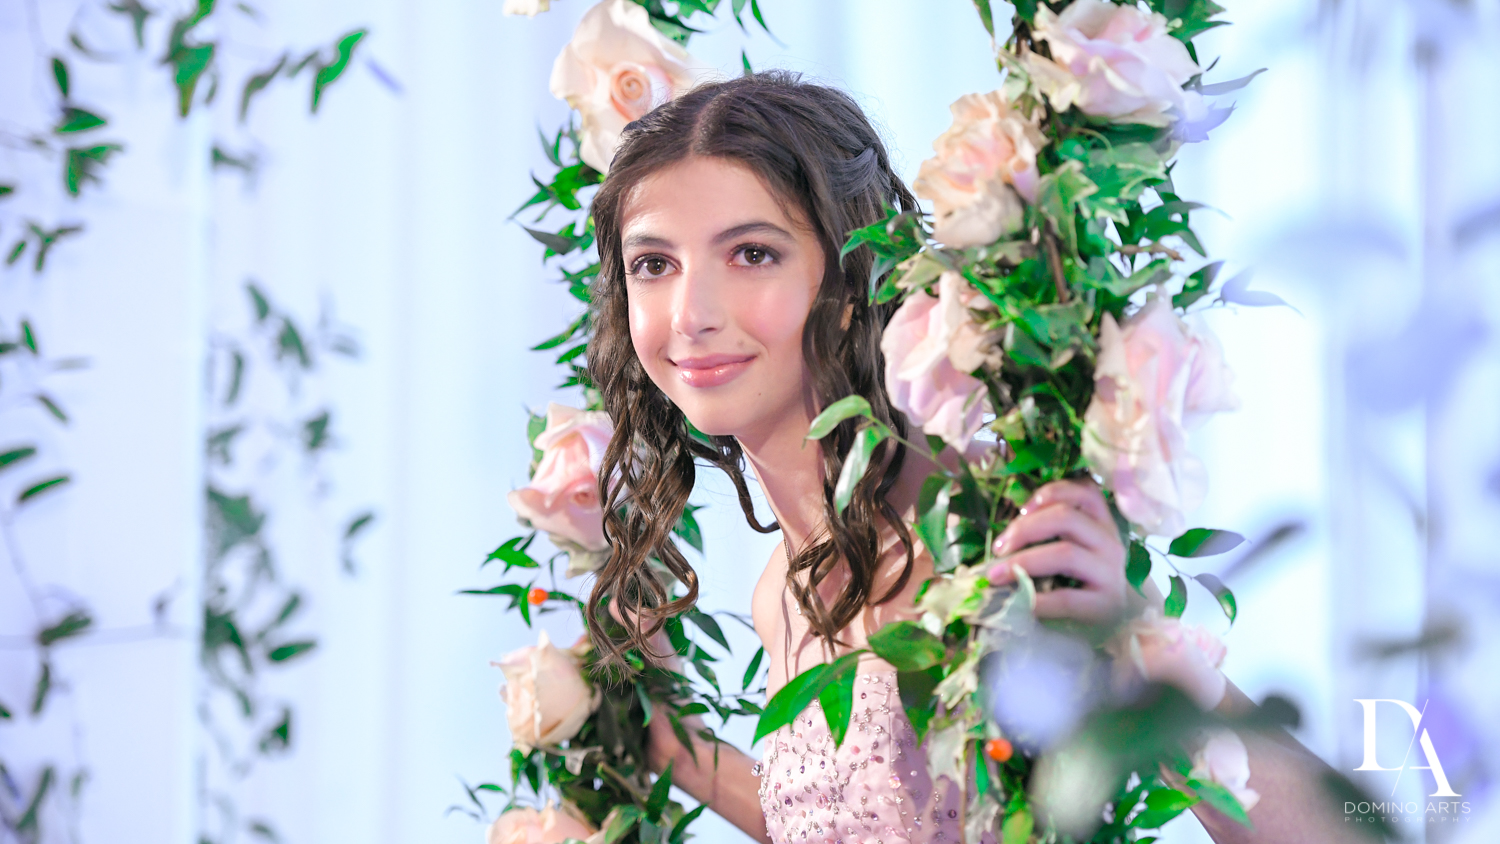 Portrait at Masquerade Ball Bat Mitzvah at Ritz Carlton Fort Lauderdale by Domino Arts Photography